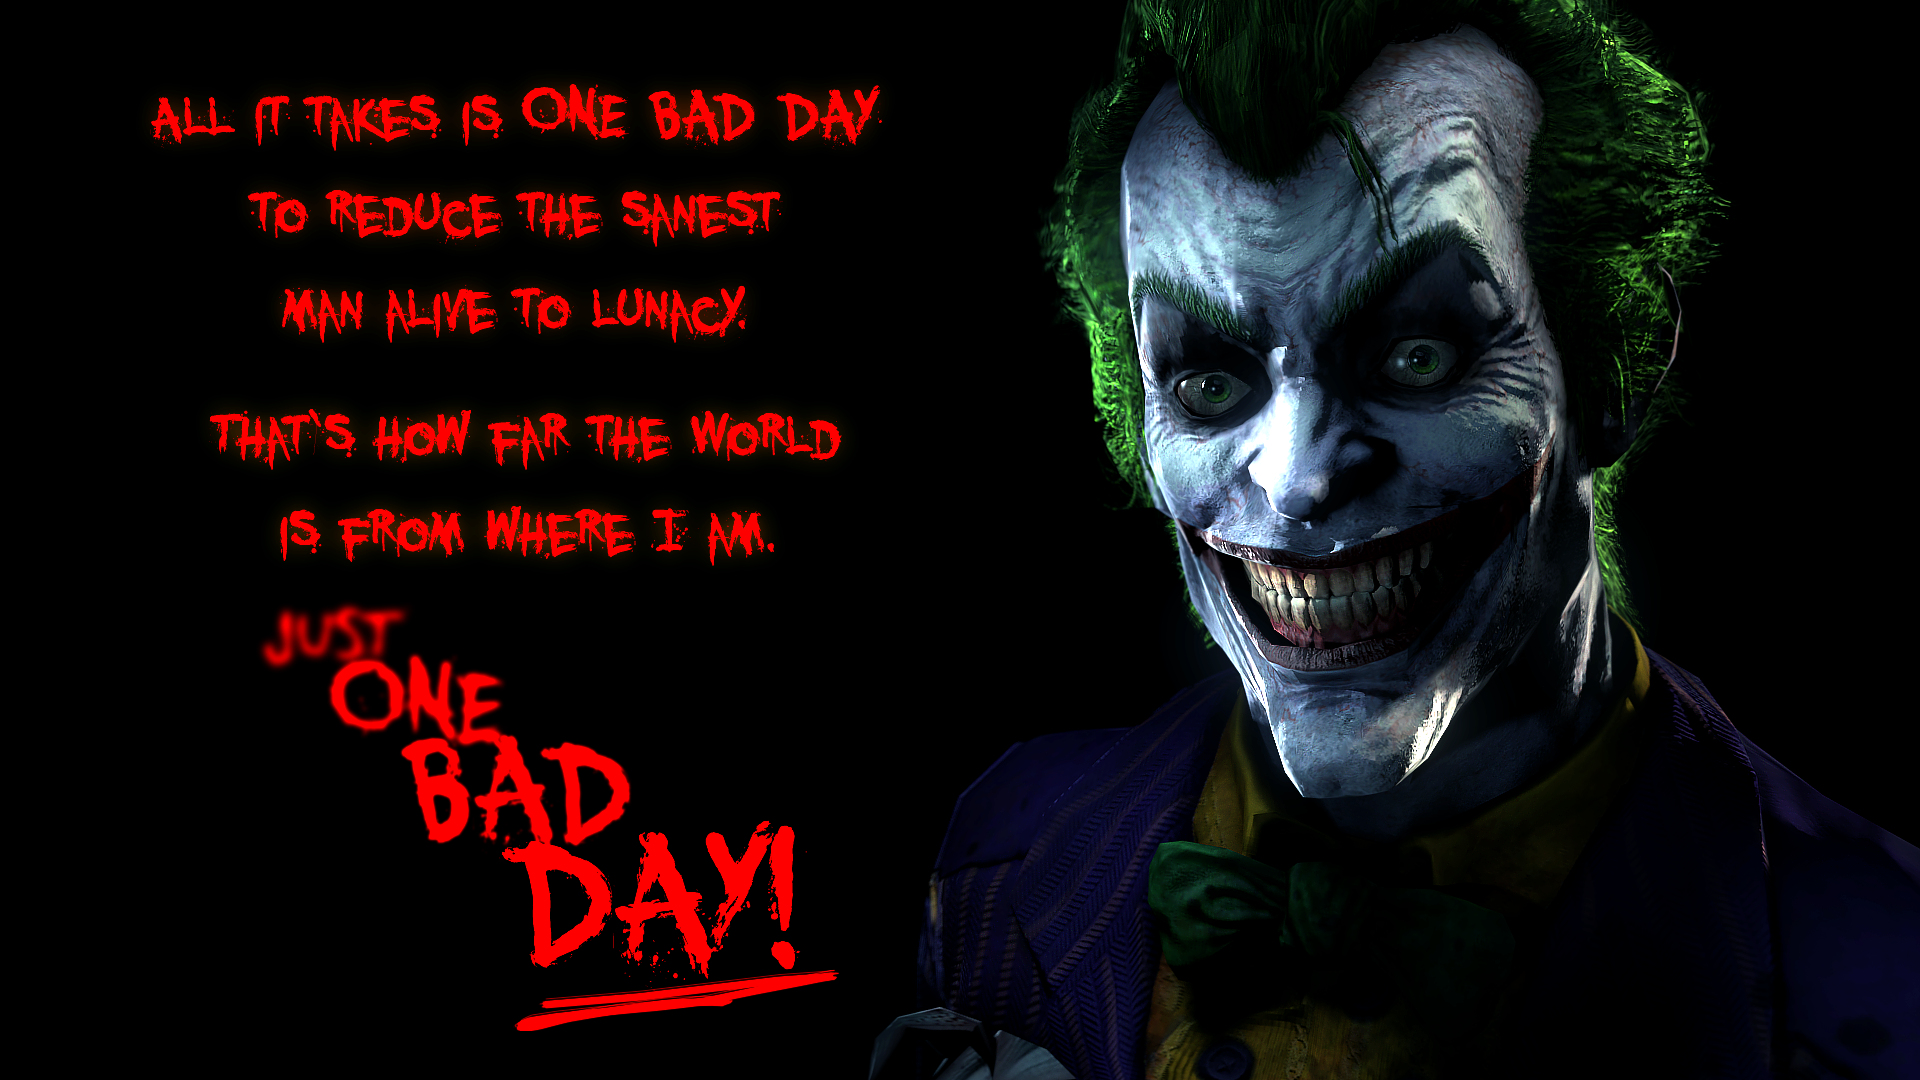 Joker Wallpaper The Bine 1920x1080